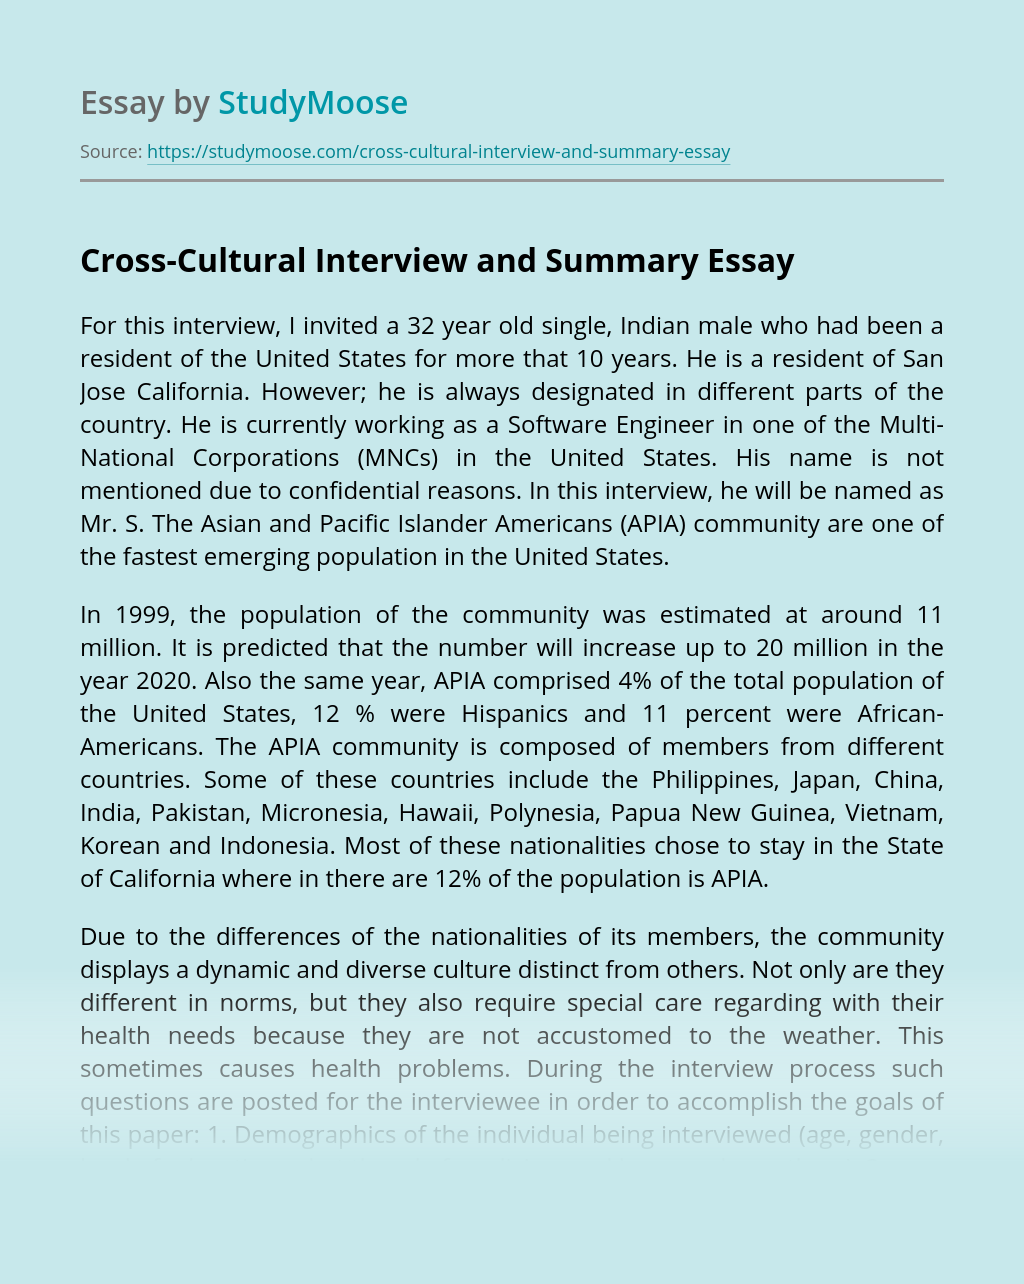 Cross-Cultural Interview and Summary